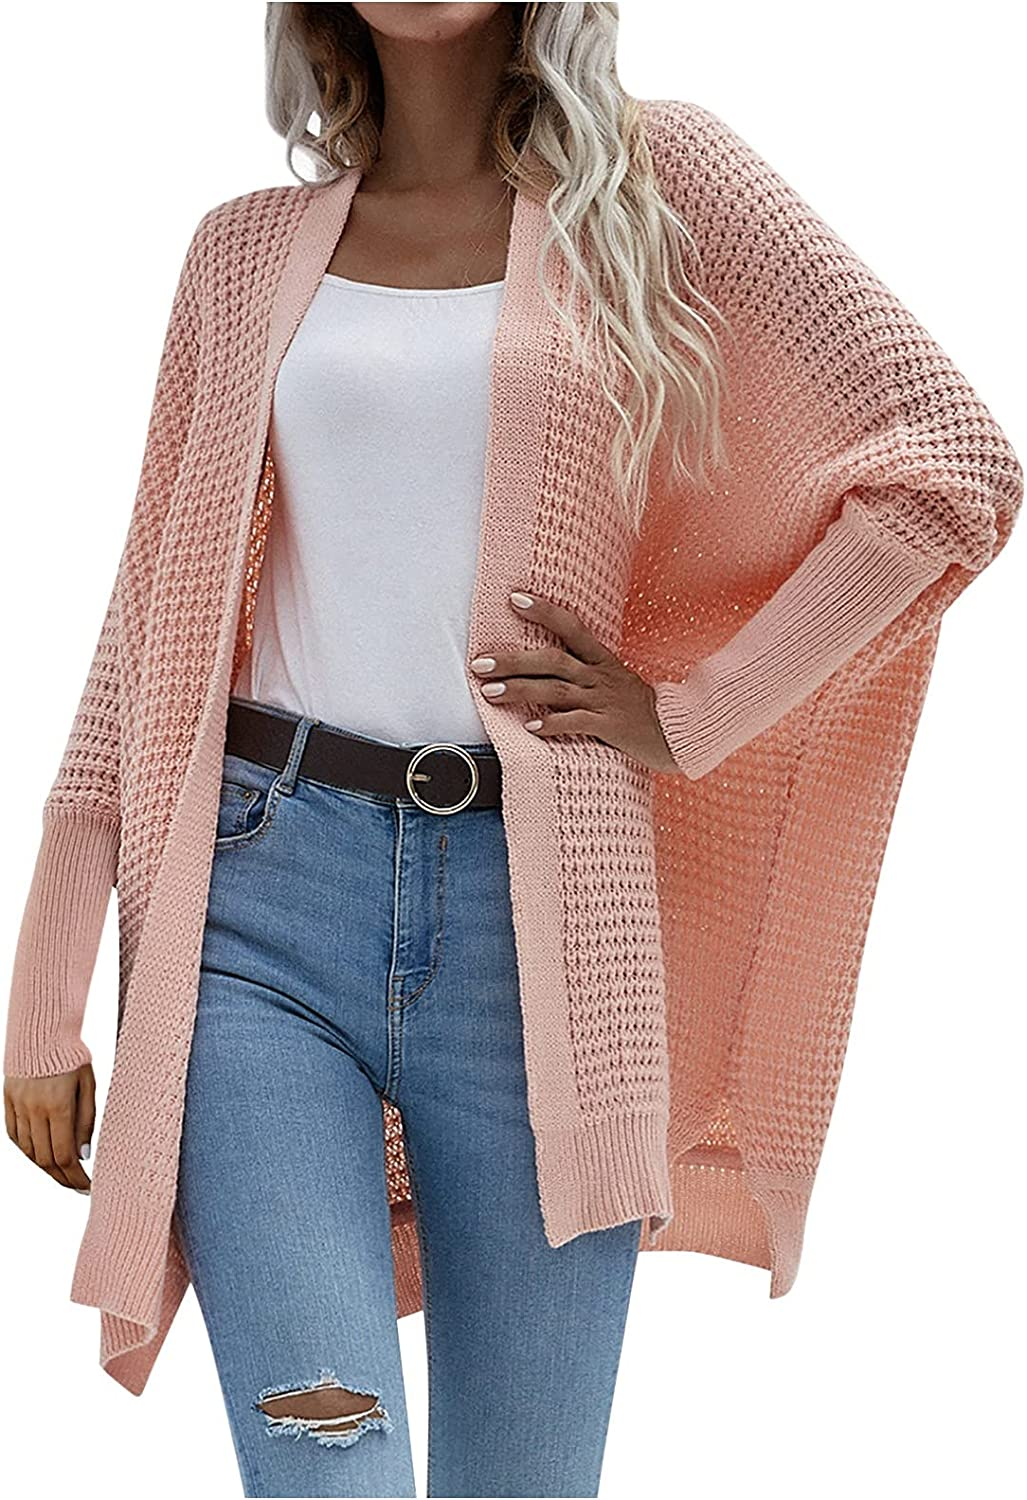 Cardigan Sweaters for Women Open Front Waffle Chunky Knit Solid Color Long Batwing Sleeve Coat with Side Split